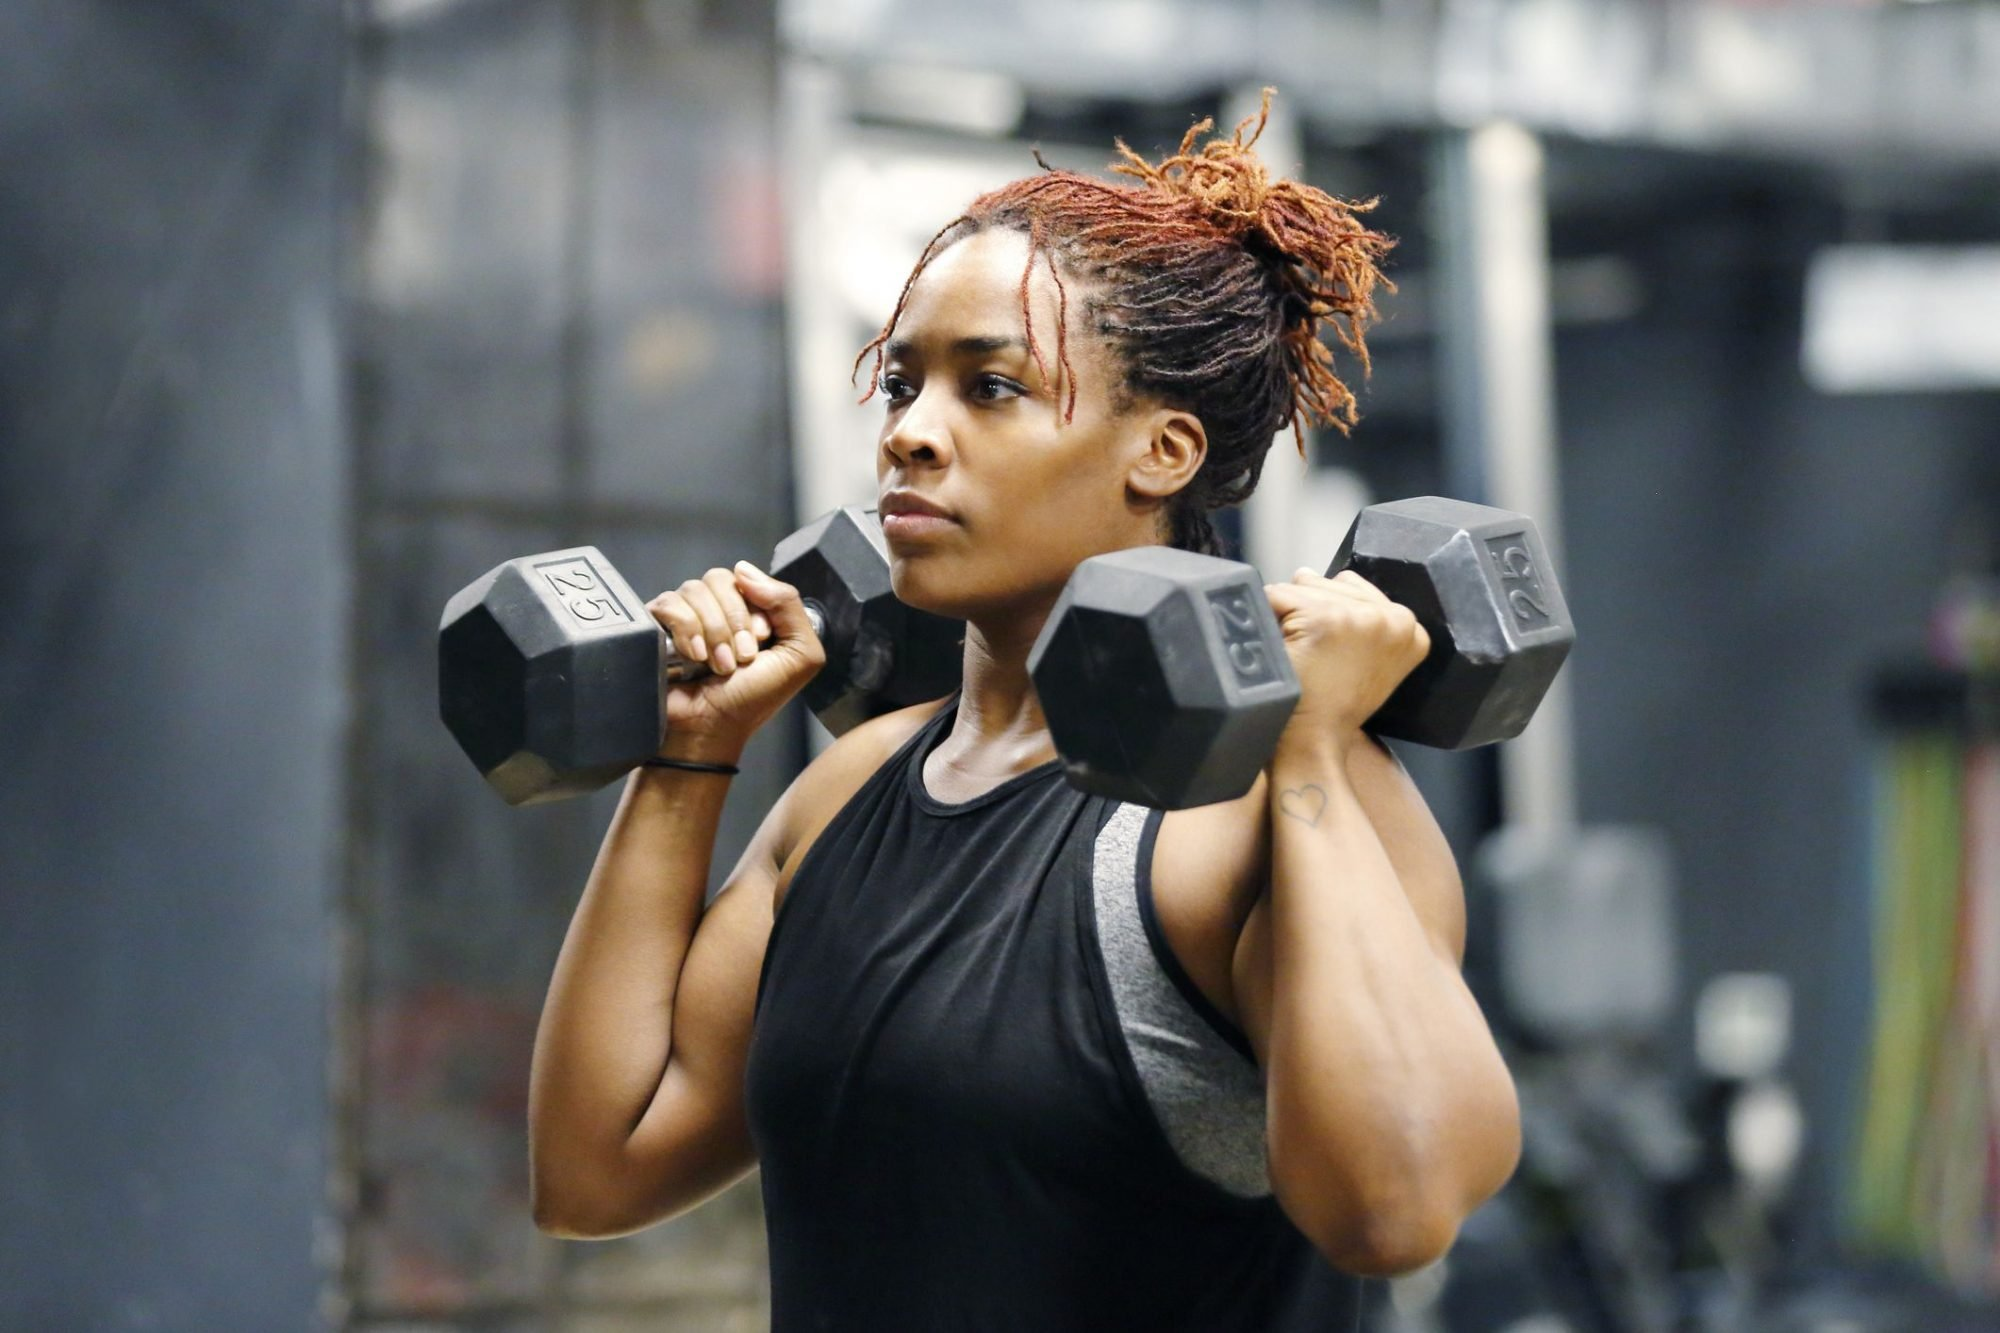 weight loss with a personal trainer in Dubai or Abu Dhabi - customised workout programs